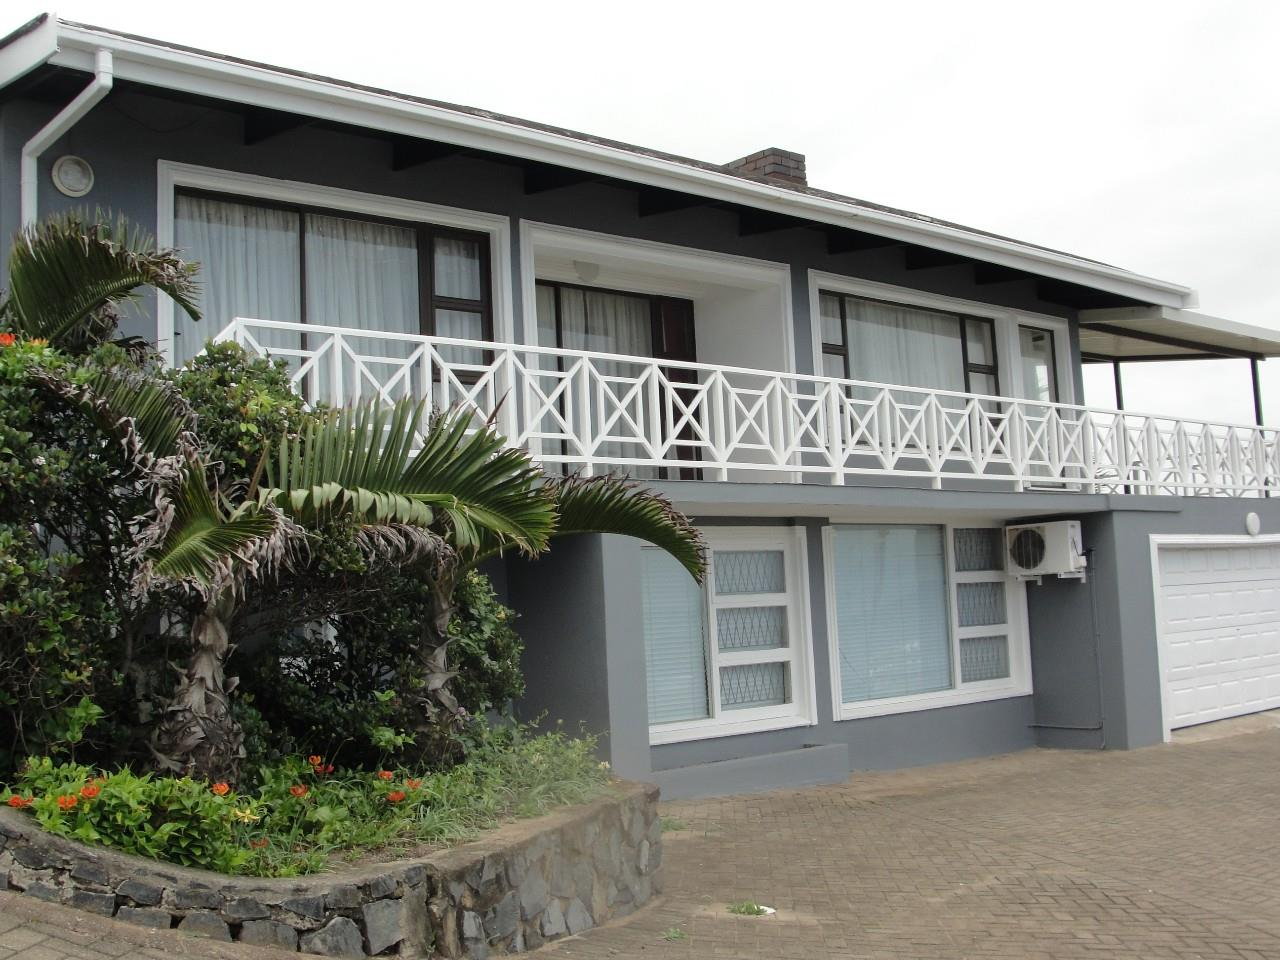 5 Bedroom House For Sale in Shelly Beach